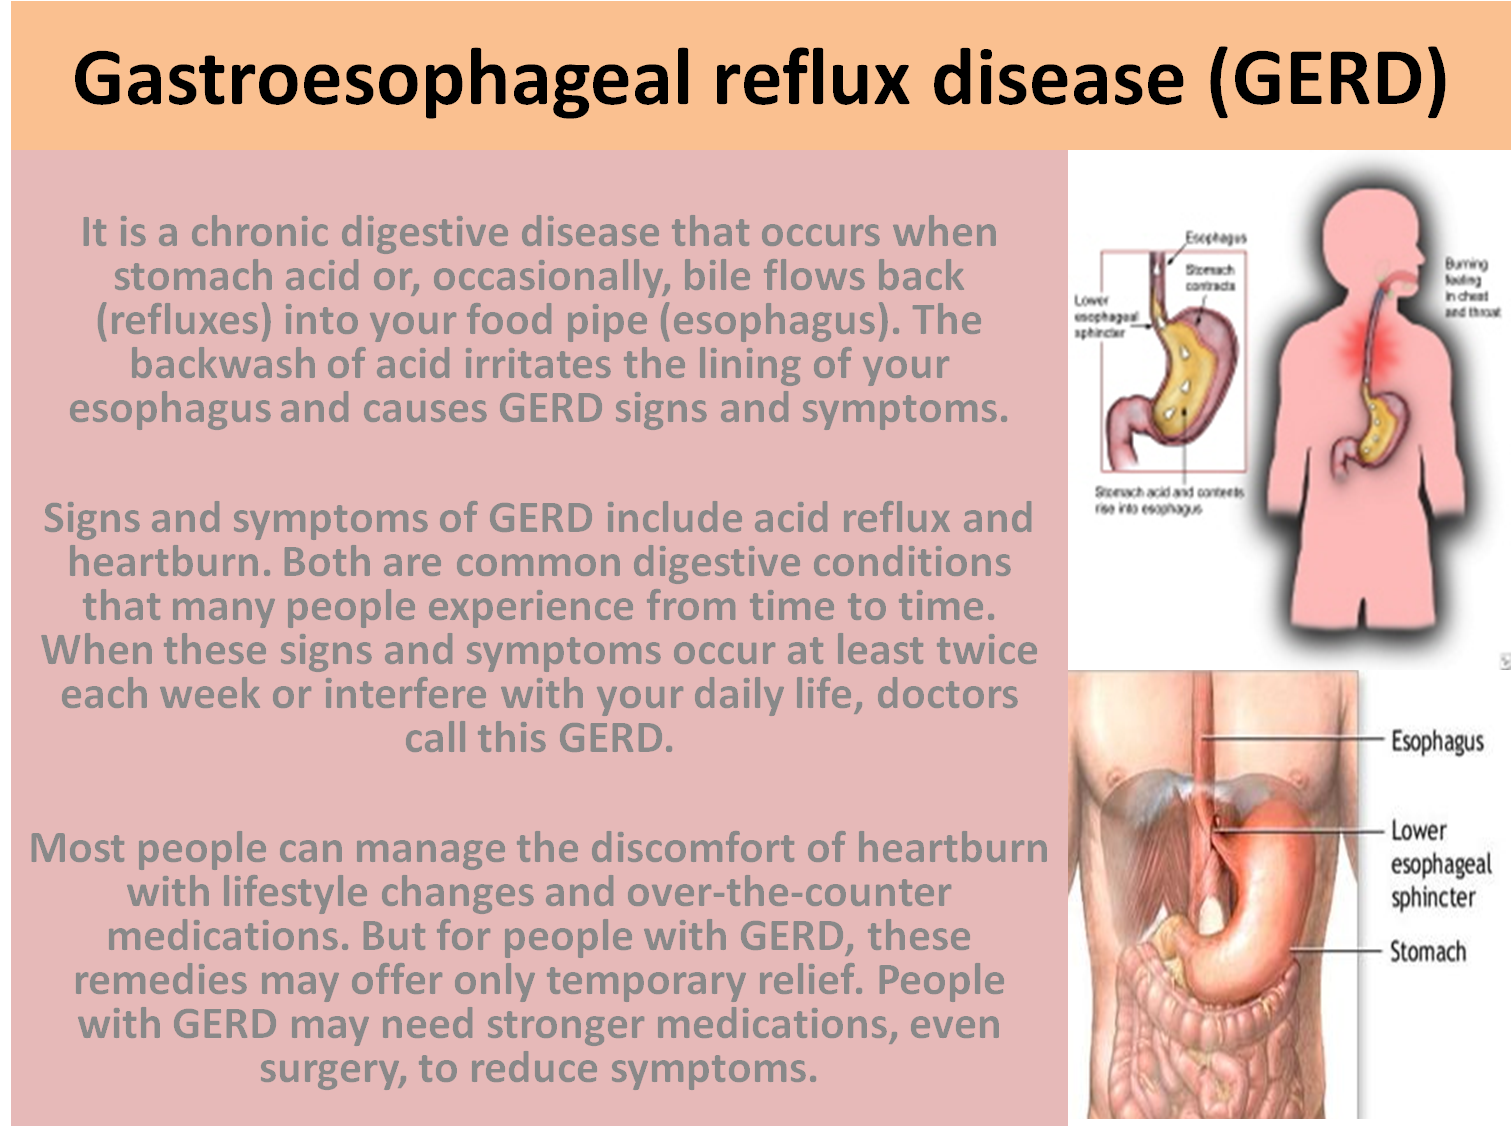 gastroesophageal reflux Gastroesophageal reflux disease (gerd) occurs when stomach acid frequently  flows back into the tube connecting your mouth and stomach.